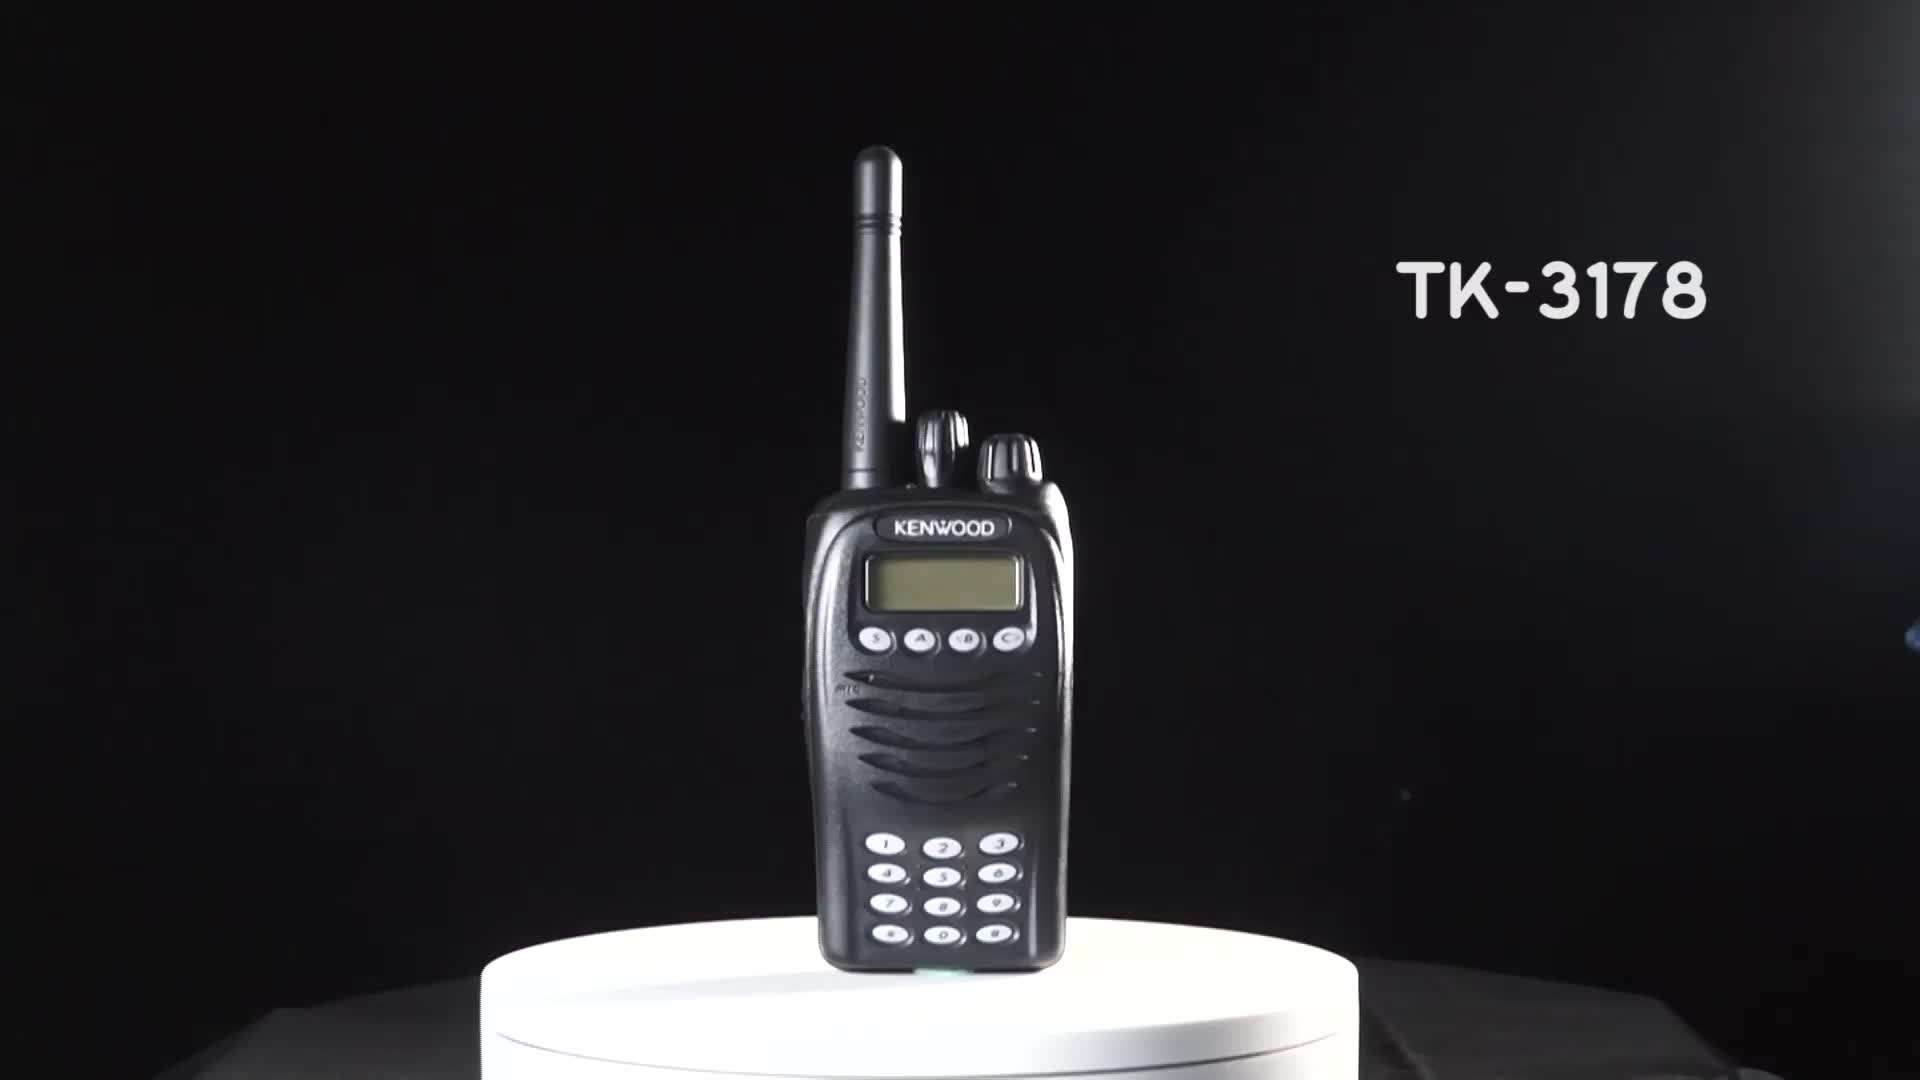 Professional UHF walkie talkie  KENWOOD TK-3178 fm transceiver with long distance